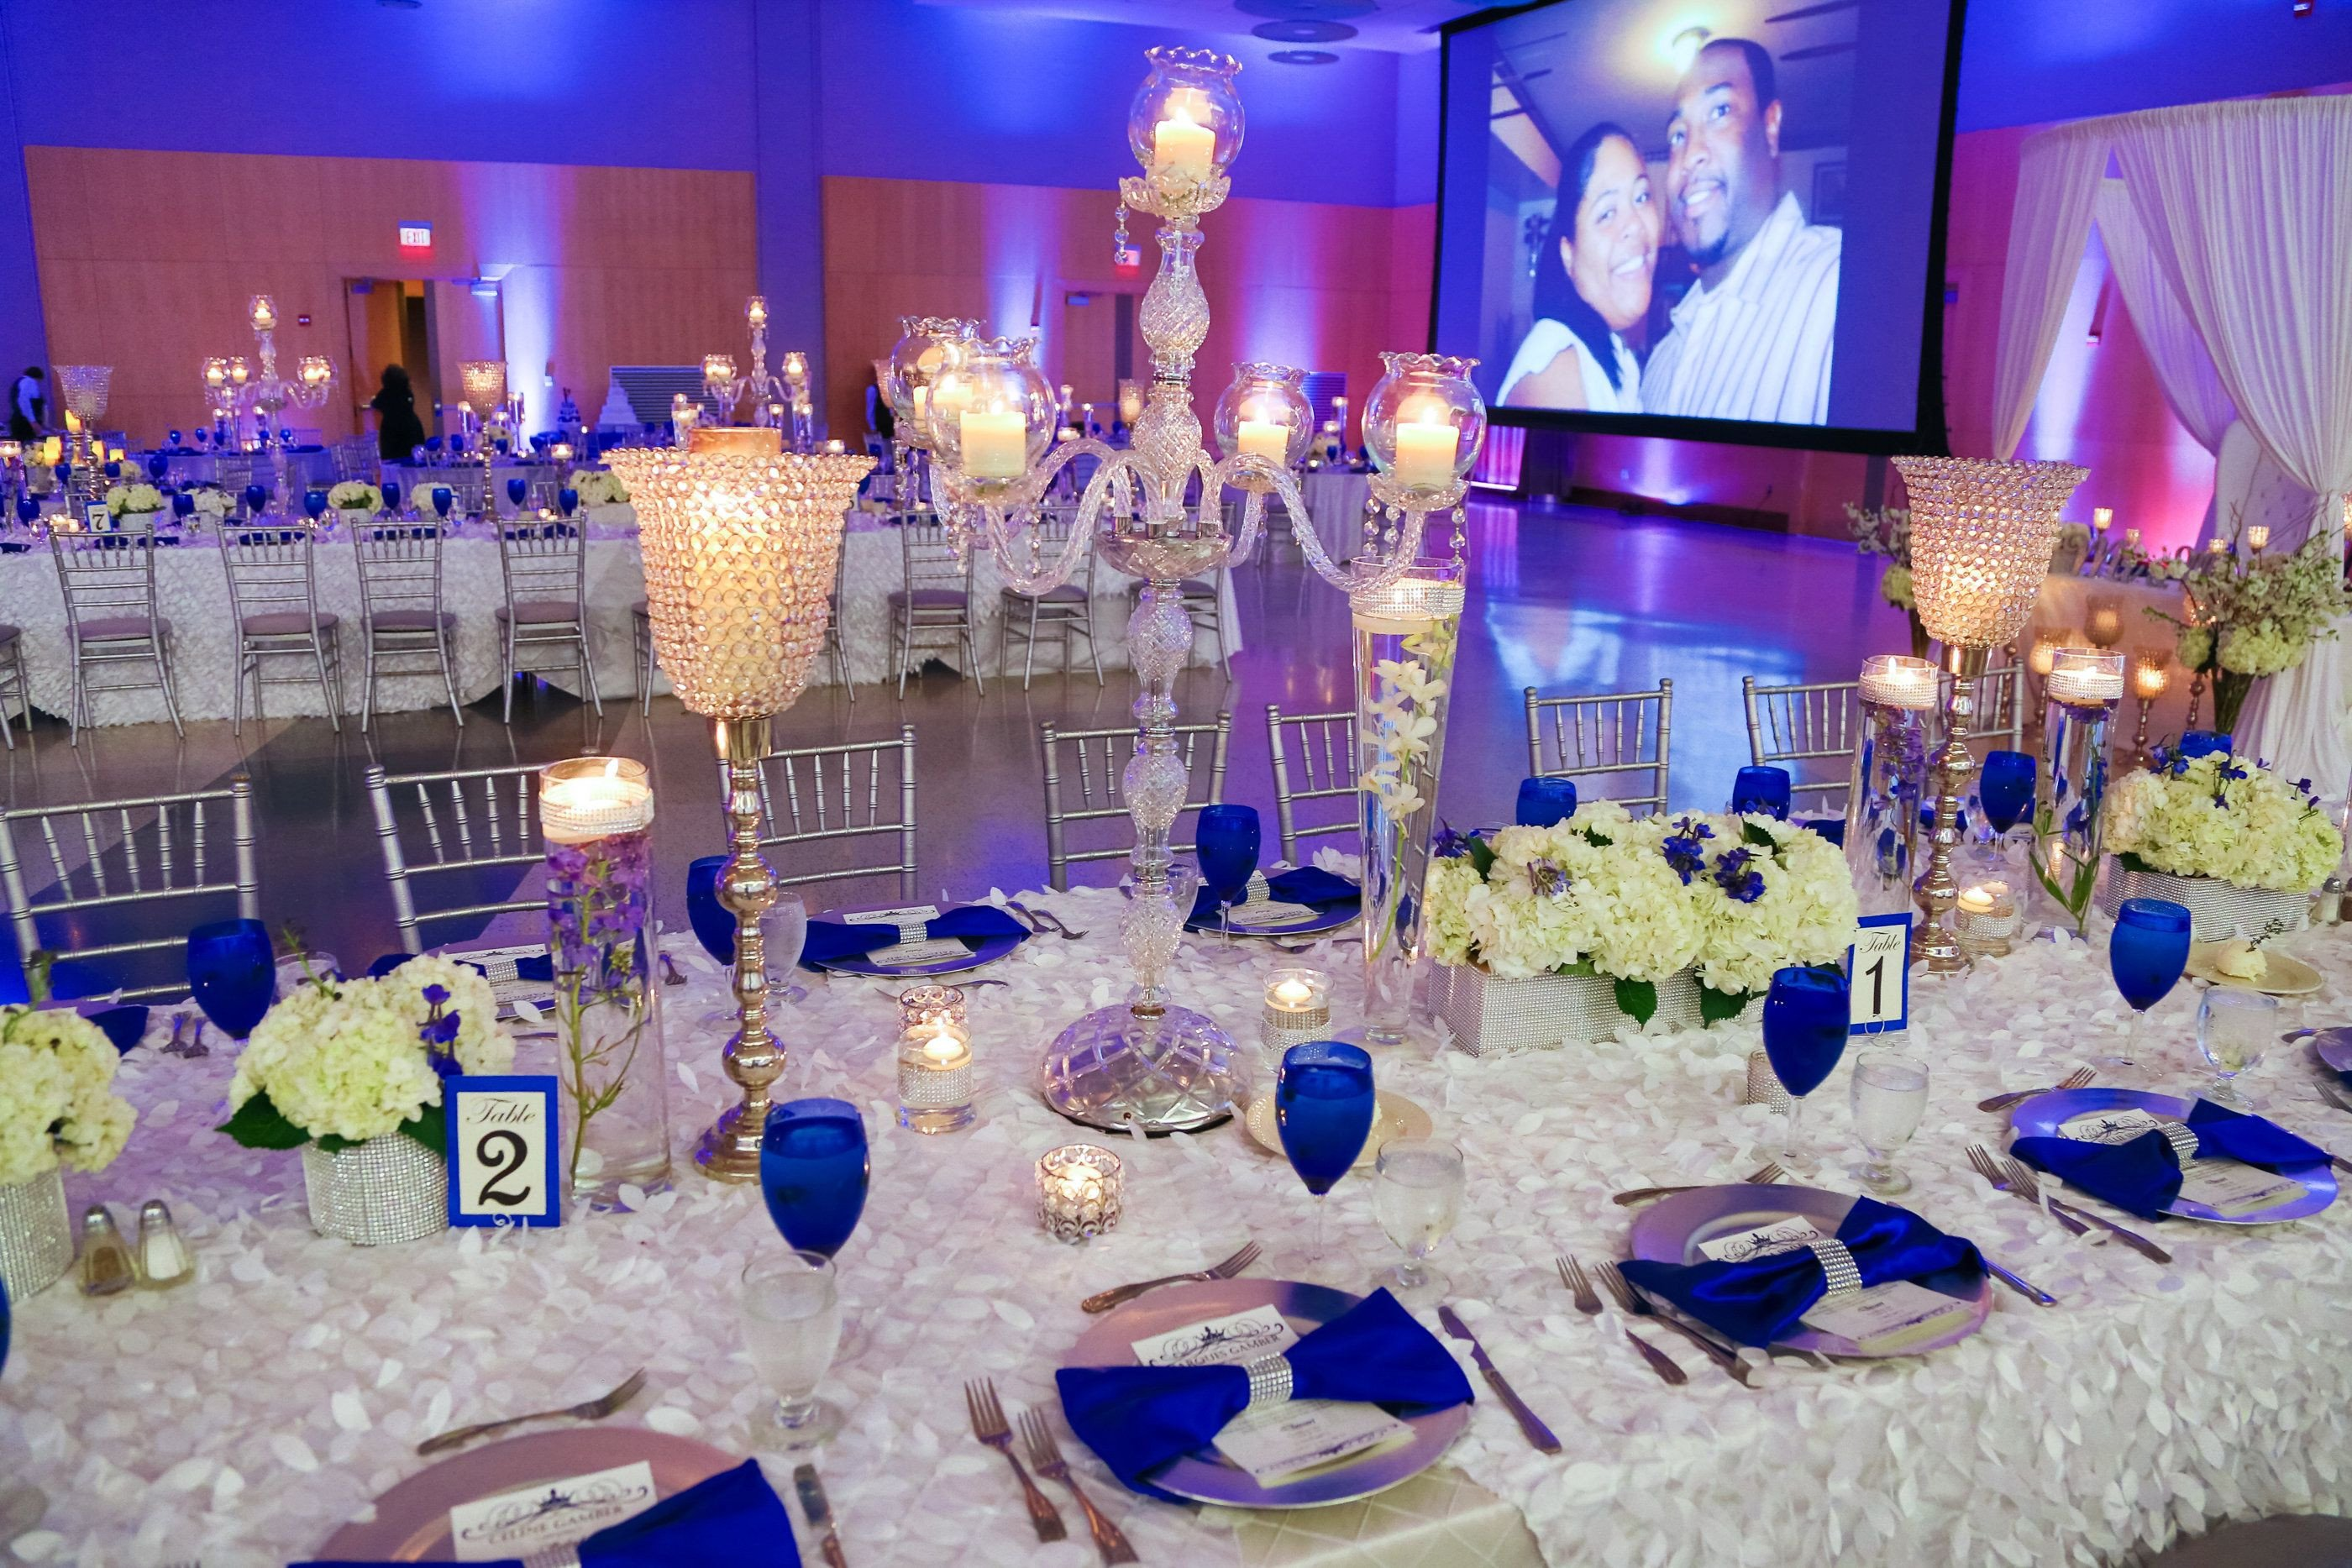 Royal Blue Decor for Weddings Awesome Our Royal Blue and White Wedding Bridal Party Blue Wedding Reception Decor Candelabras